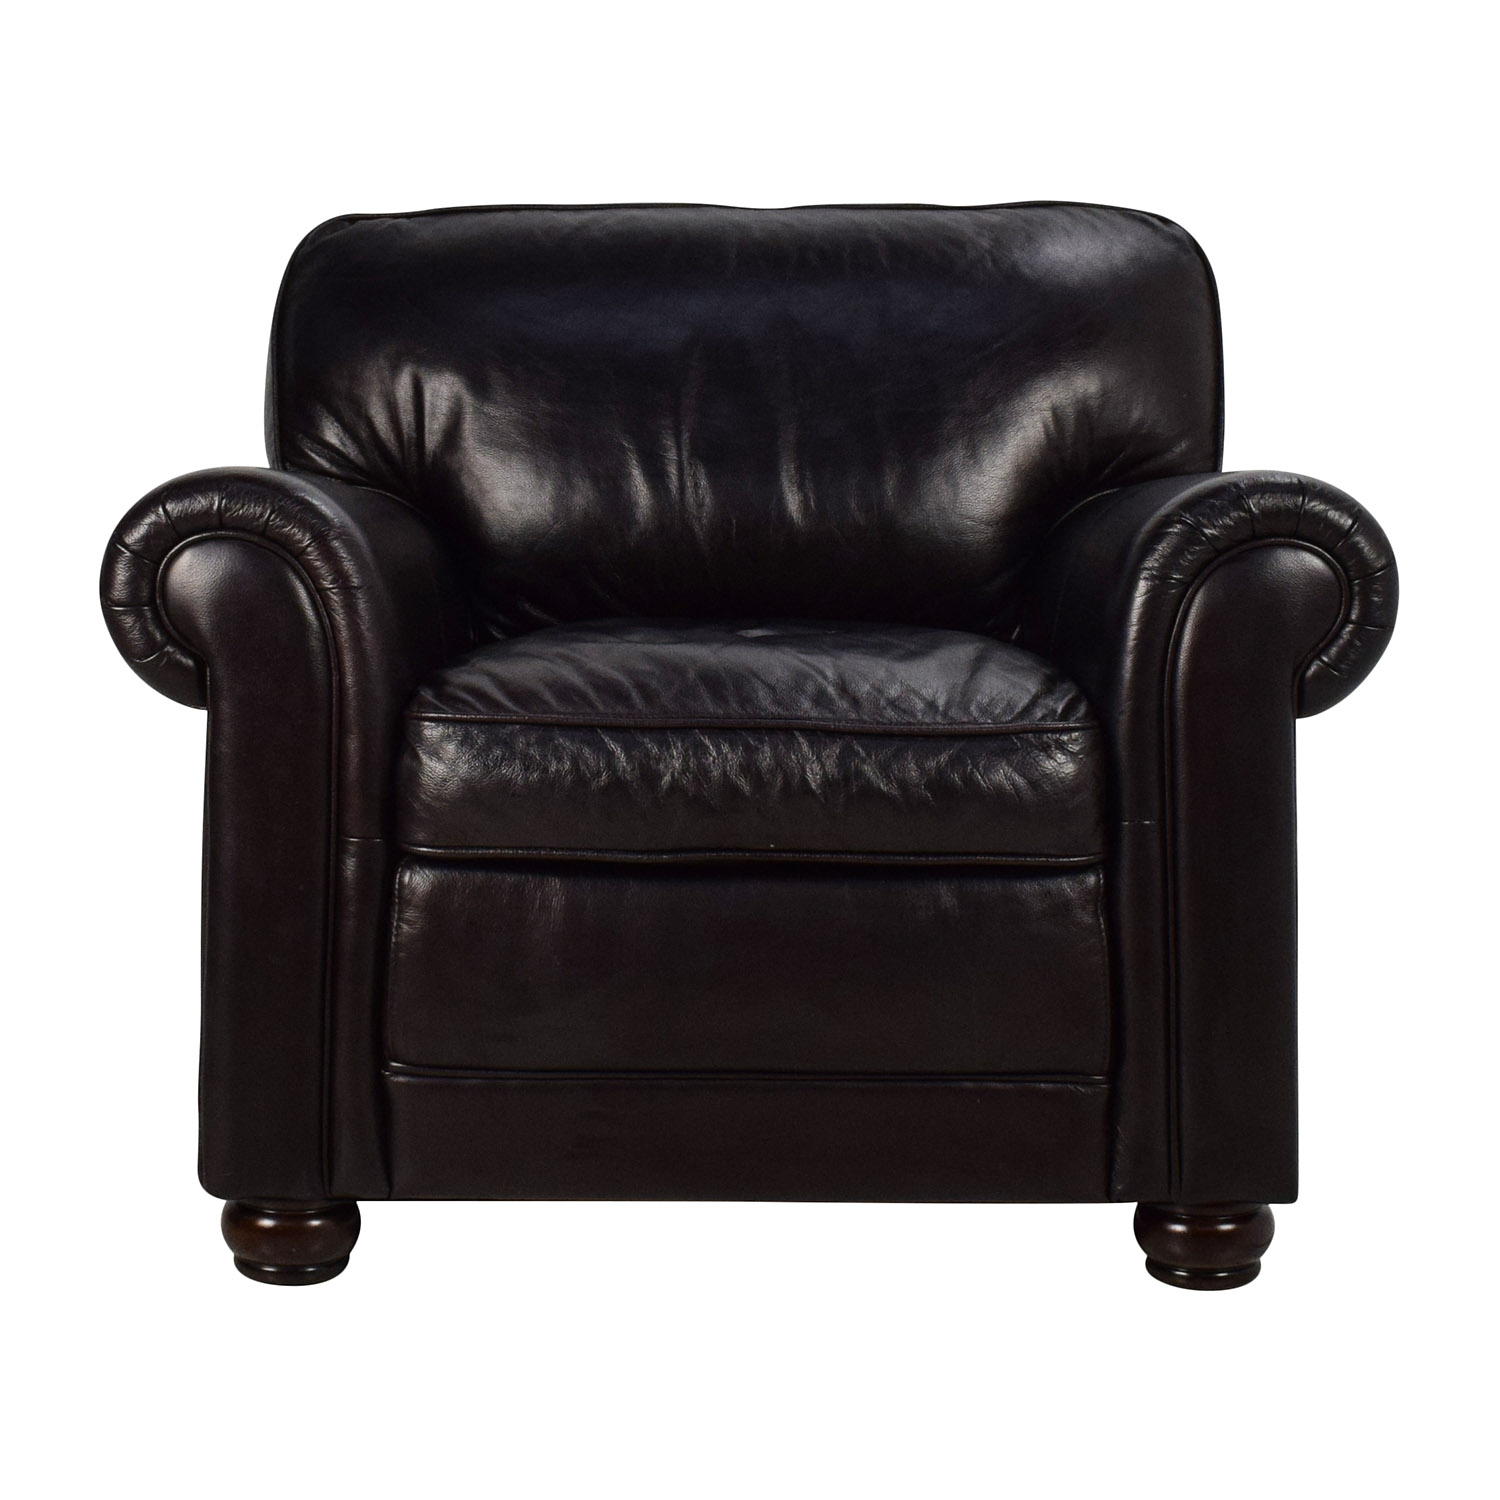 74% OFF Bobs Furniture Bob s Furniture Leather Dark Brown Chair